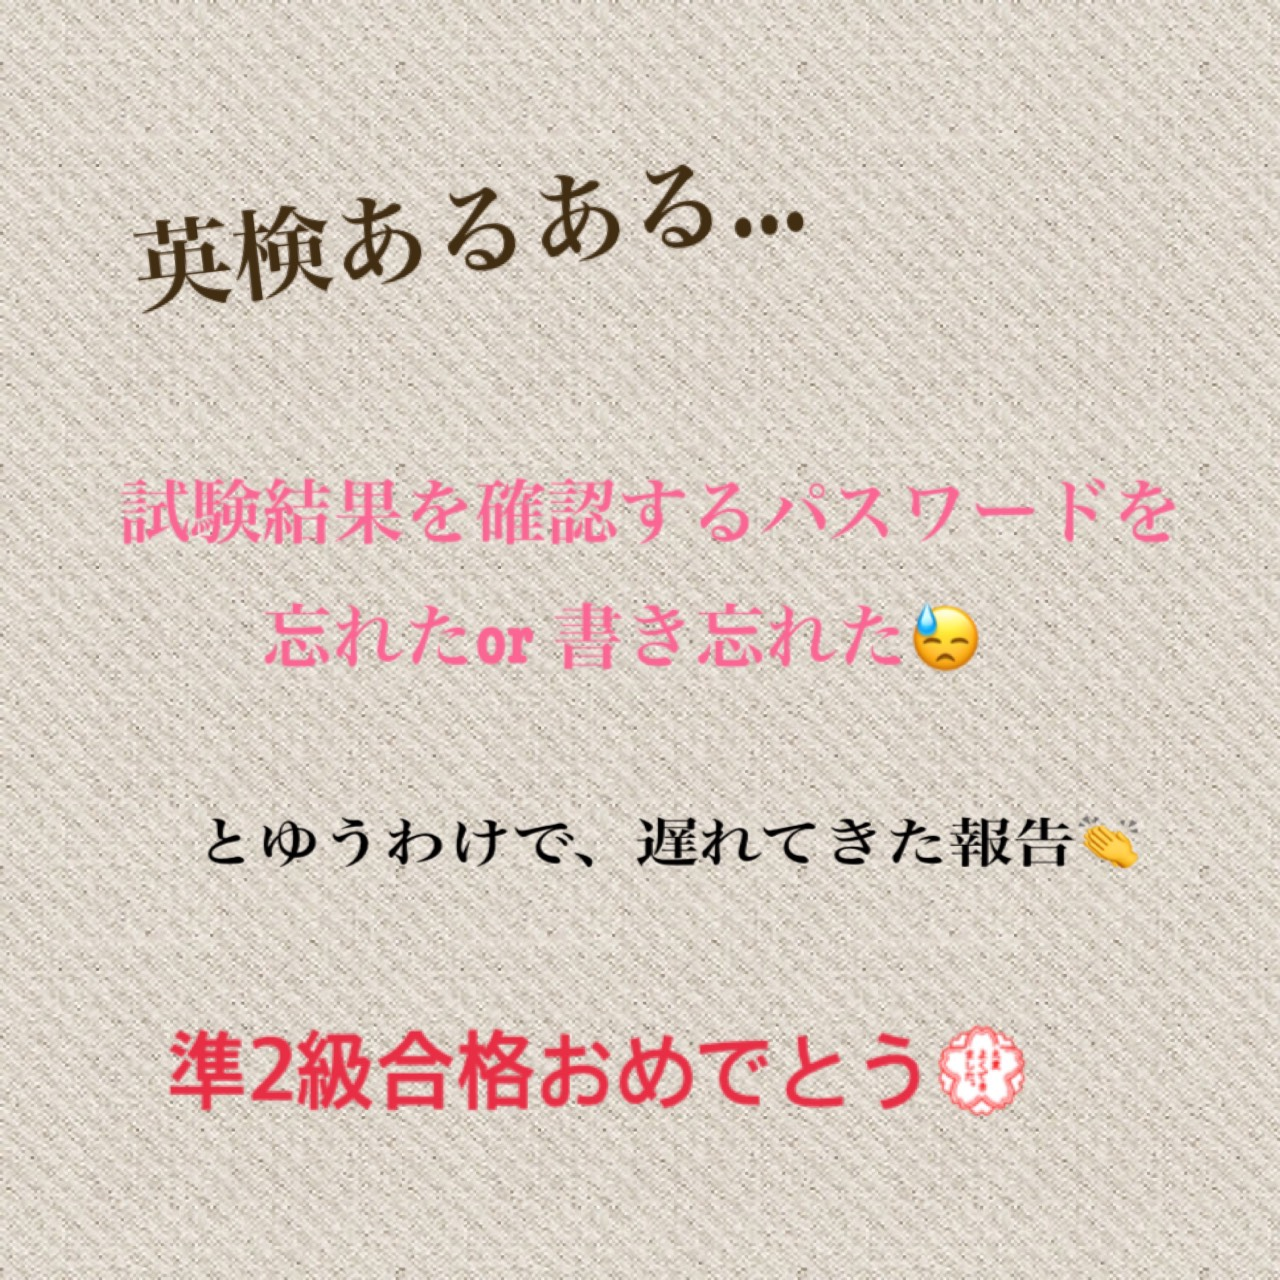 ✳︎良い報告は遅れてくる Good news will come later.✳︎